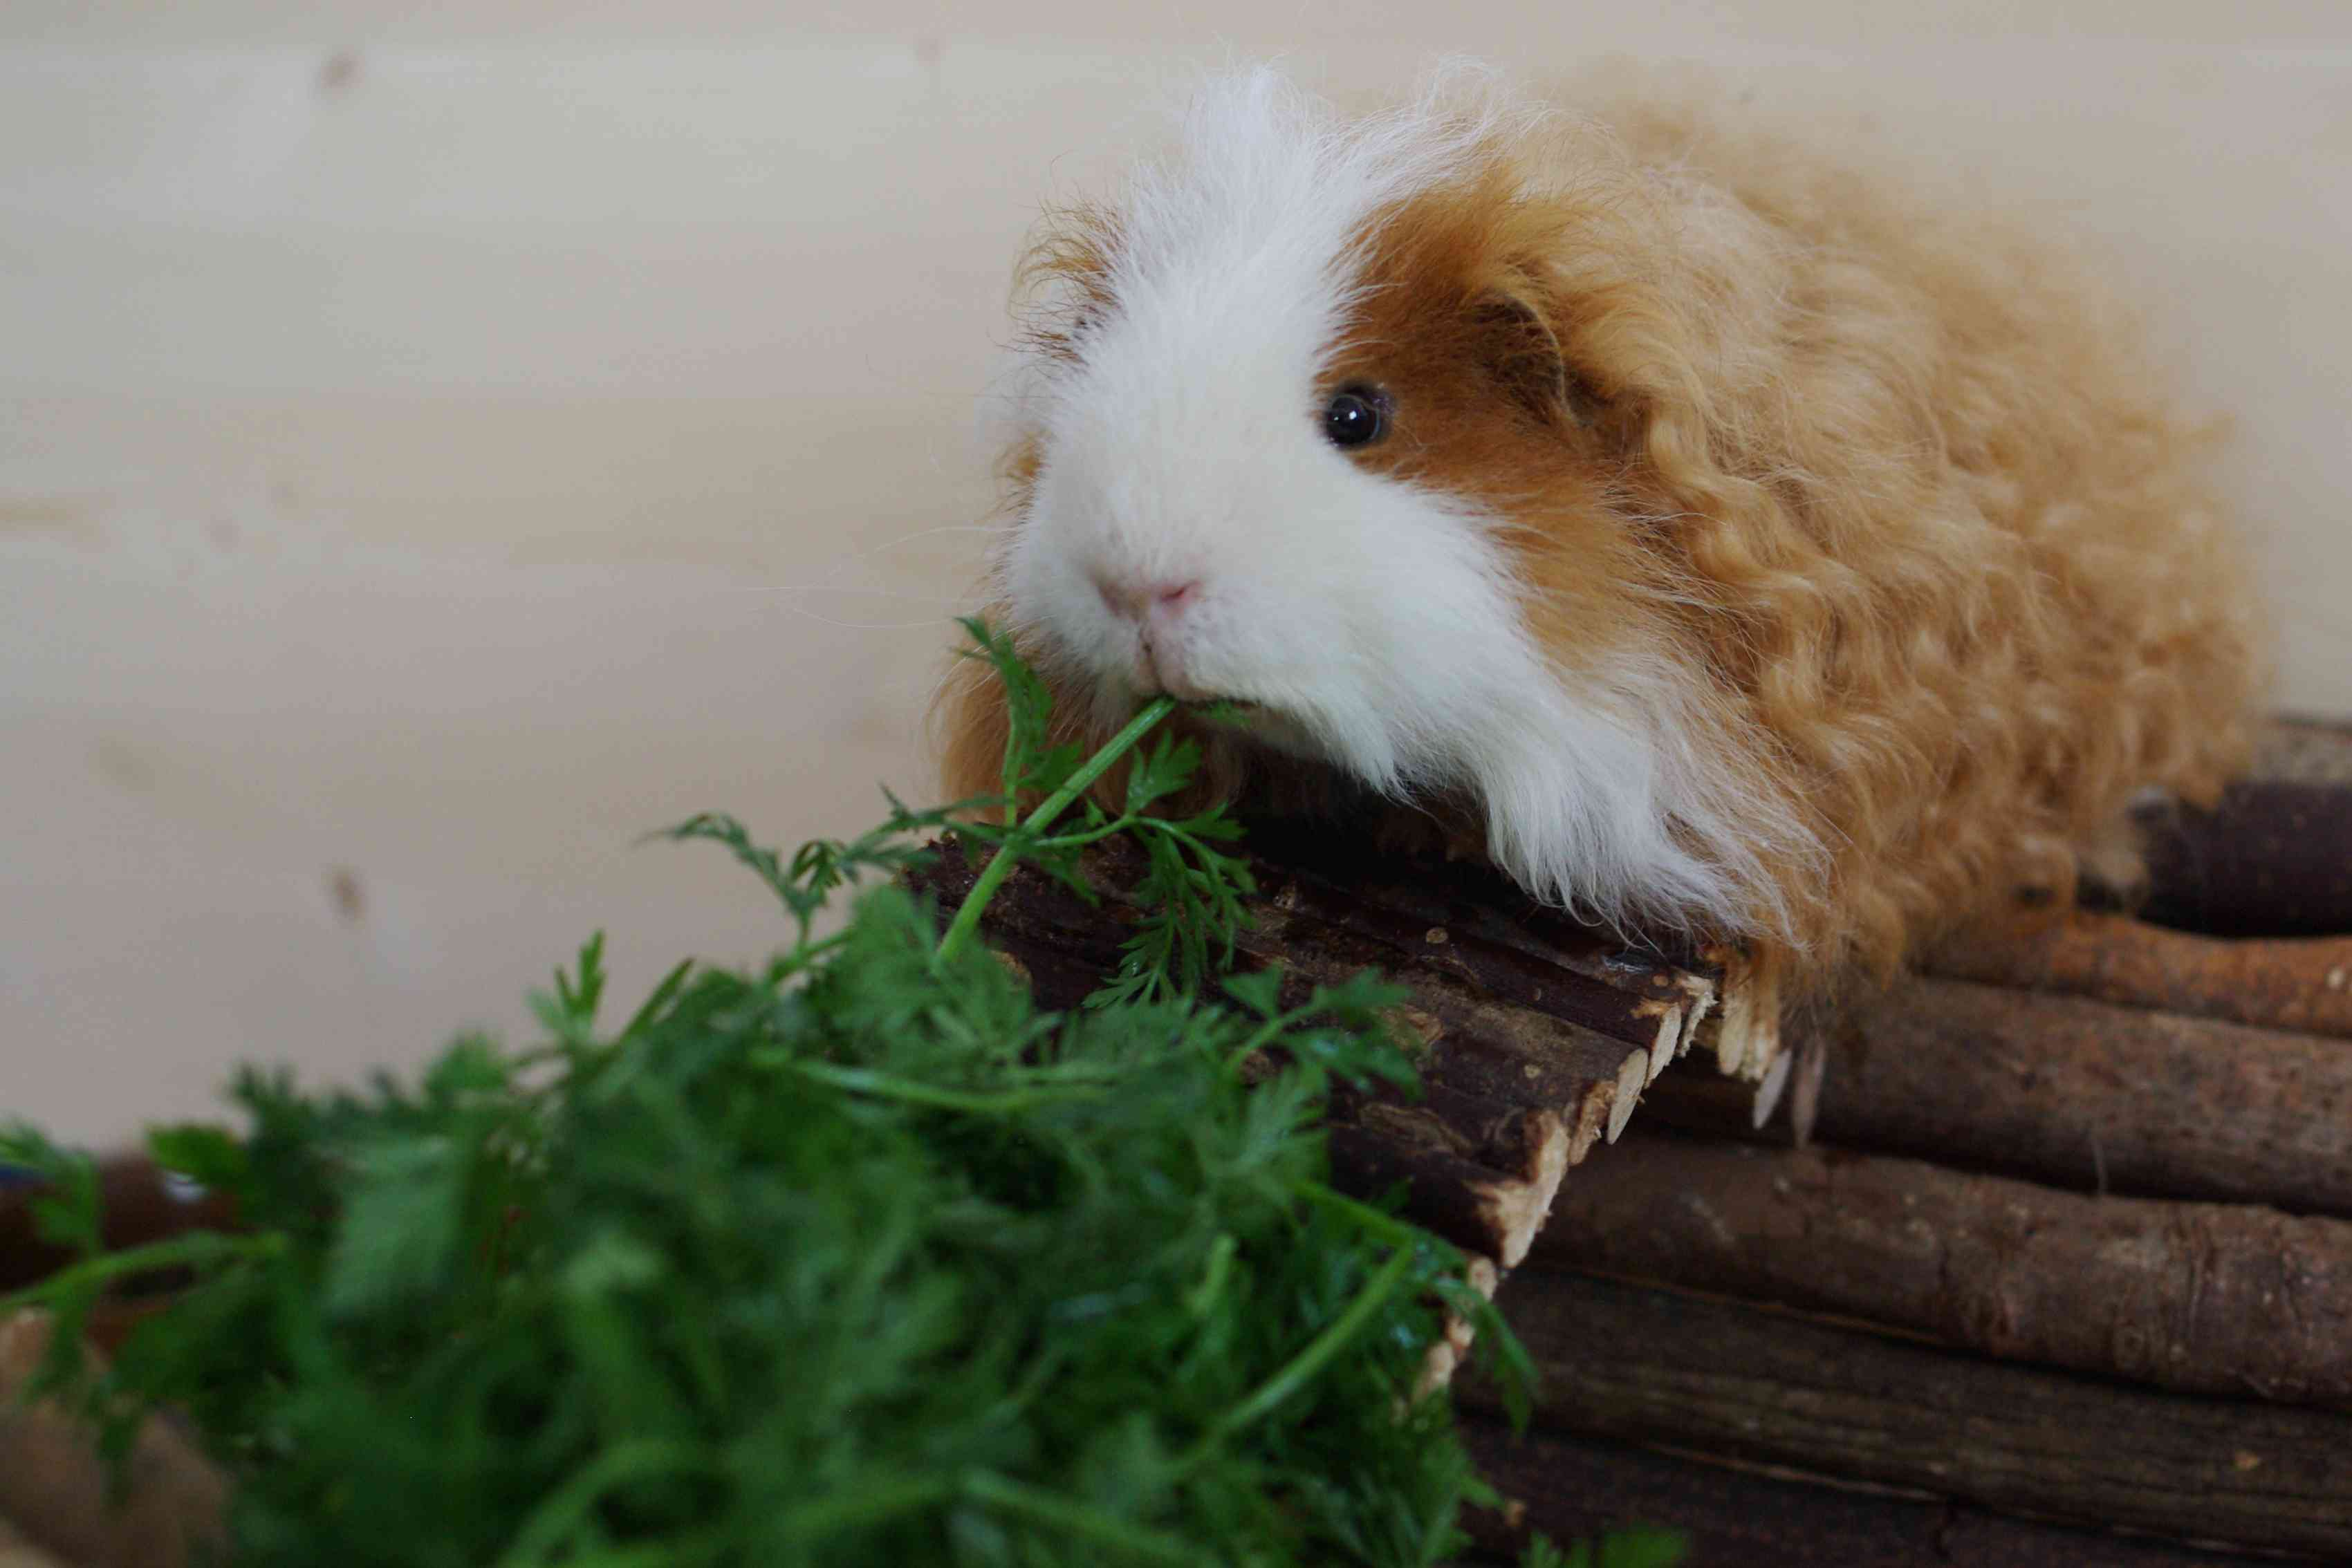 brown and white Texel guinea pig eating greens